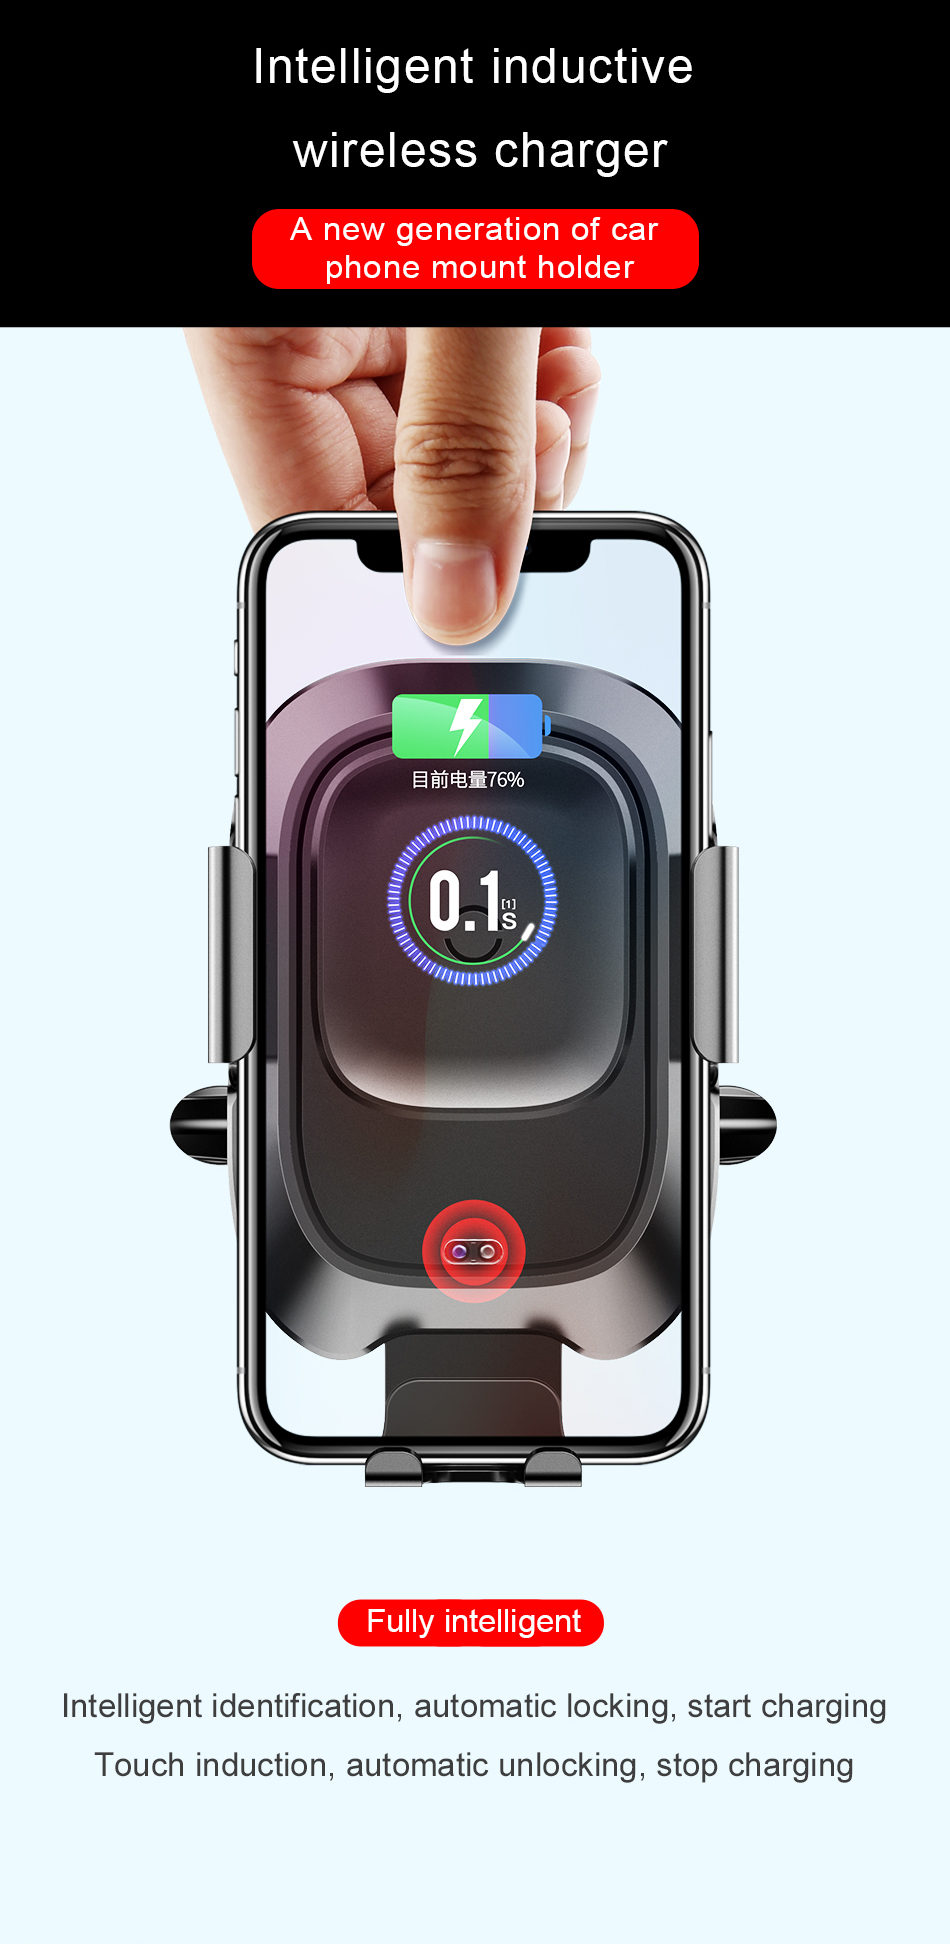 HTB19s9BXiDxK1Rjy1zcq6yGeXXab - Baseus Qi Car Wireless Charger For iPhone Xs Max XR X Samsung Intelligent Infrared Sensor Fast Wirless Charging Car Phone Holder